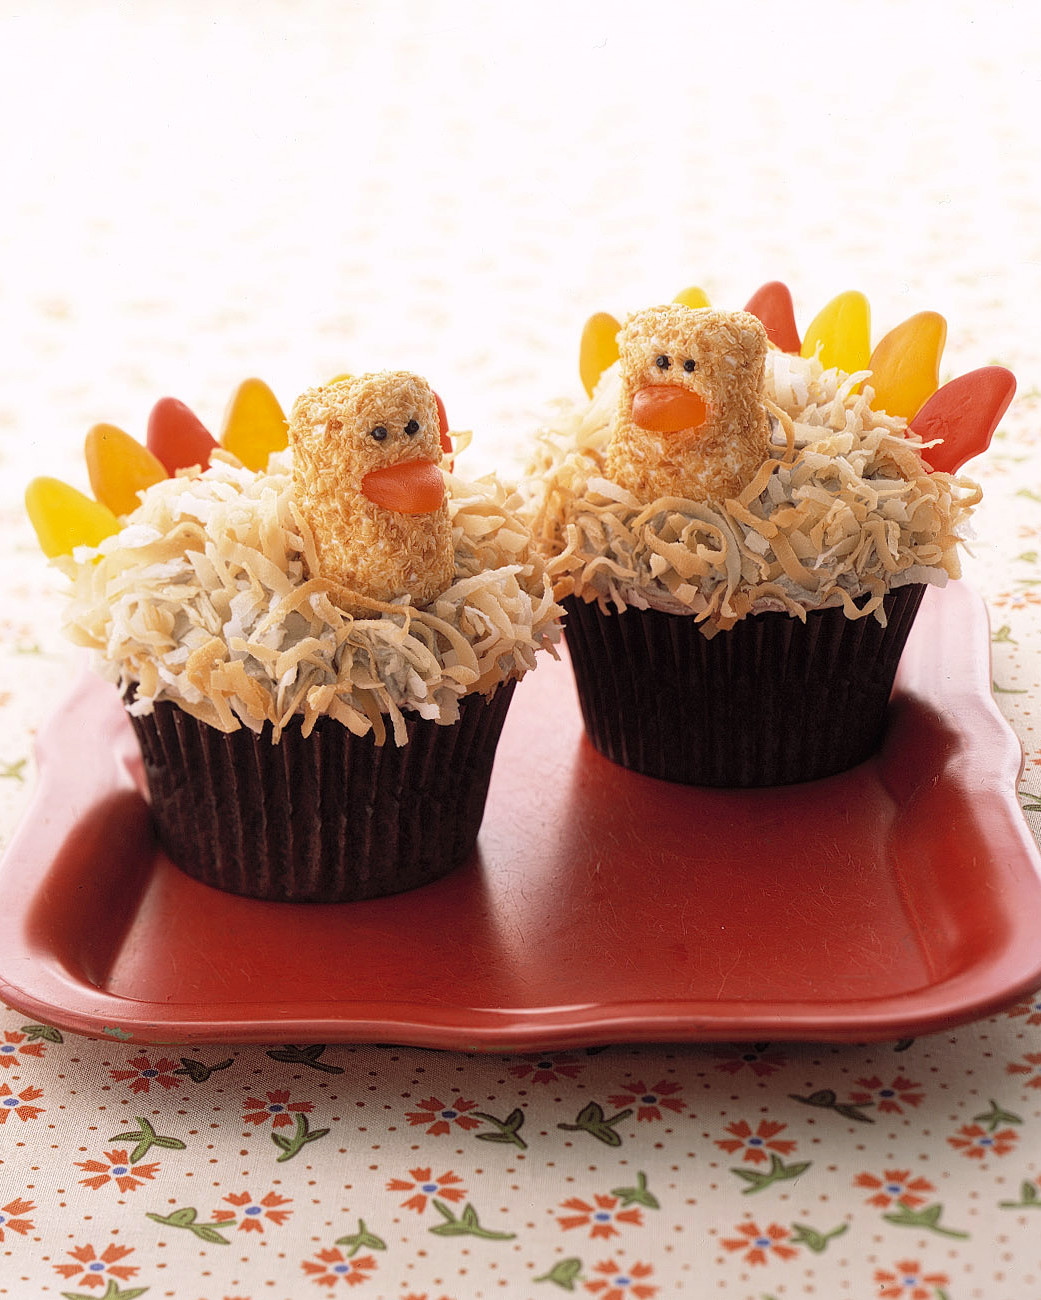 10 Cute Thanksgiving Desserts That Guests Will Gobble Up